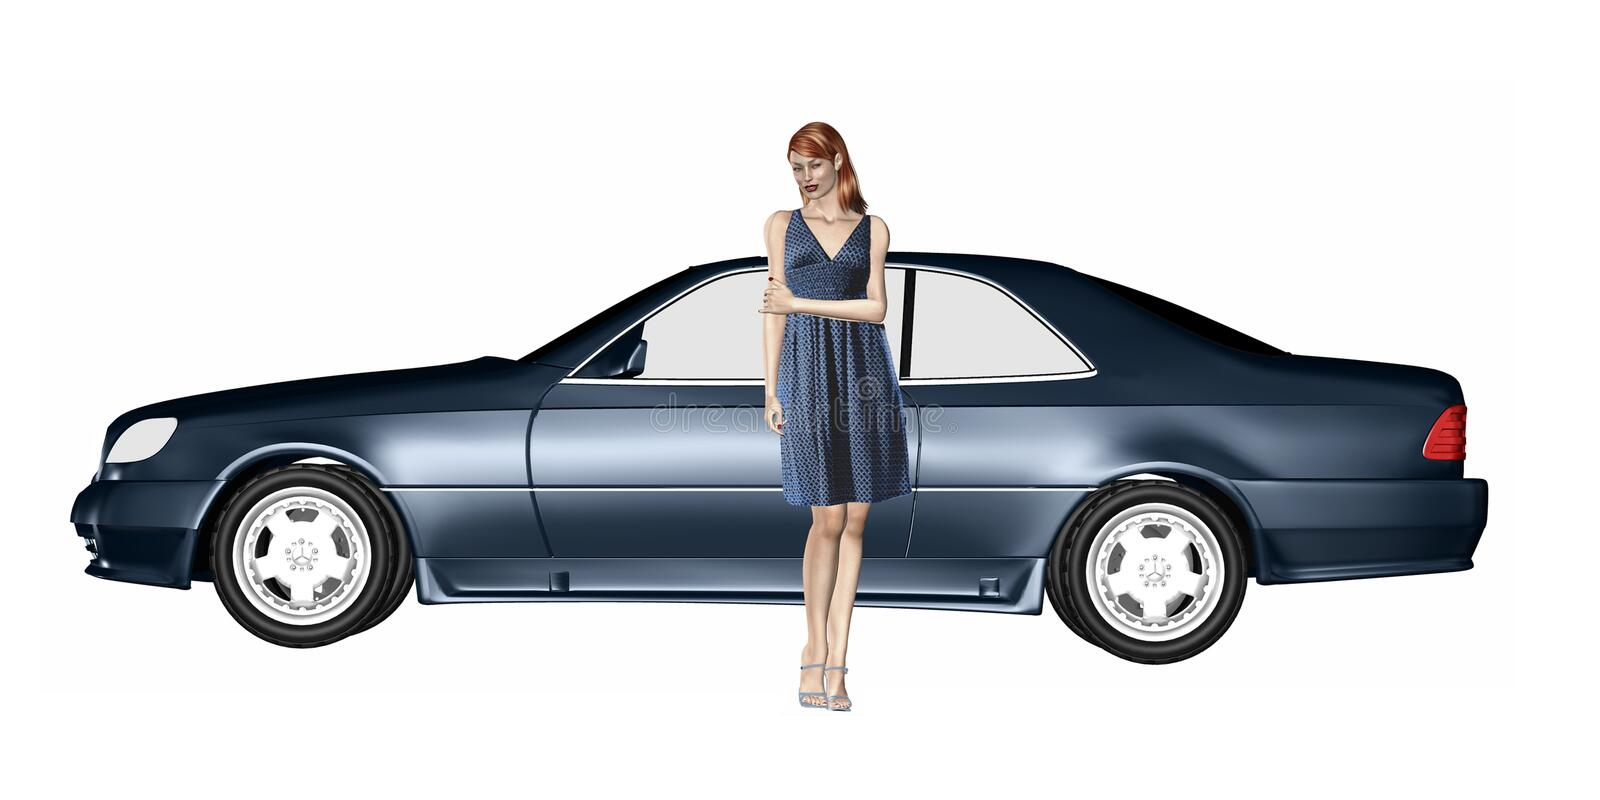 Woman And Car Stock Photography